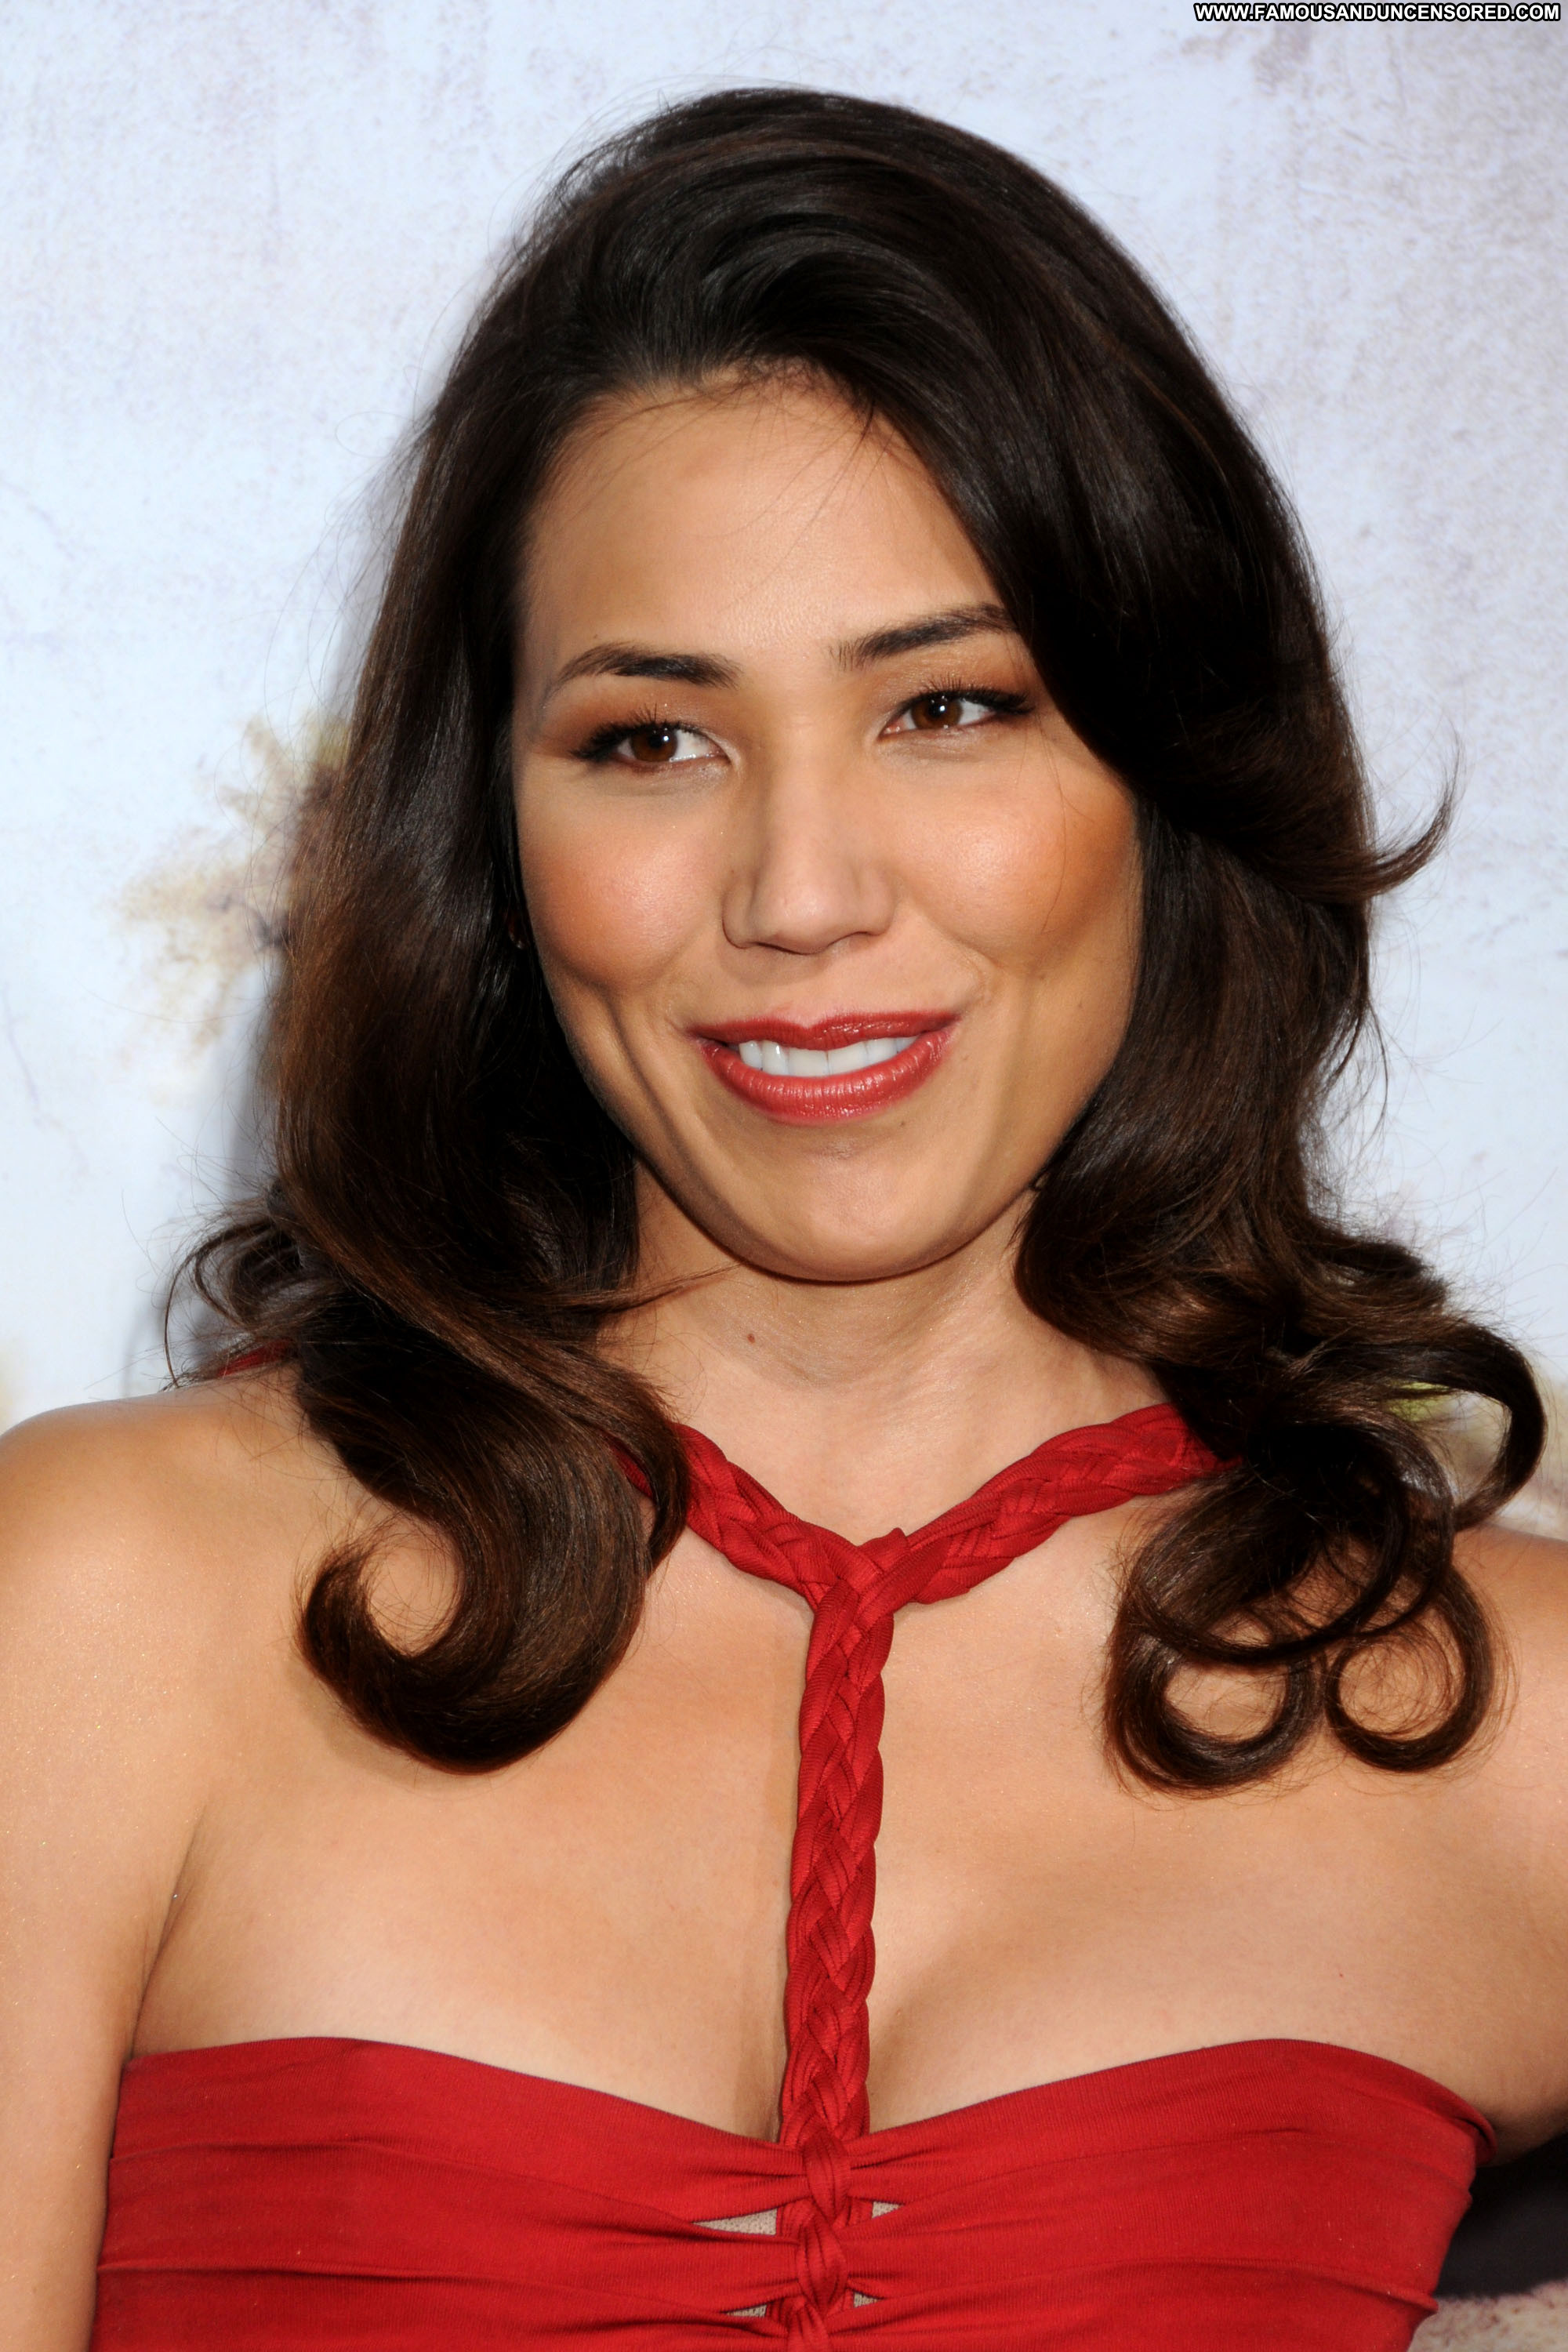 Michaela Conlin The Lincoln Lawyer The Lincoln Lawyer Celebrity Beautiful Babe Posing Hot High ...